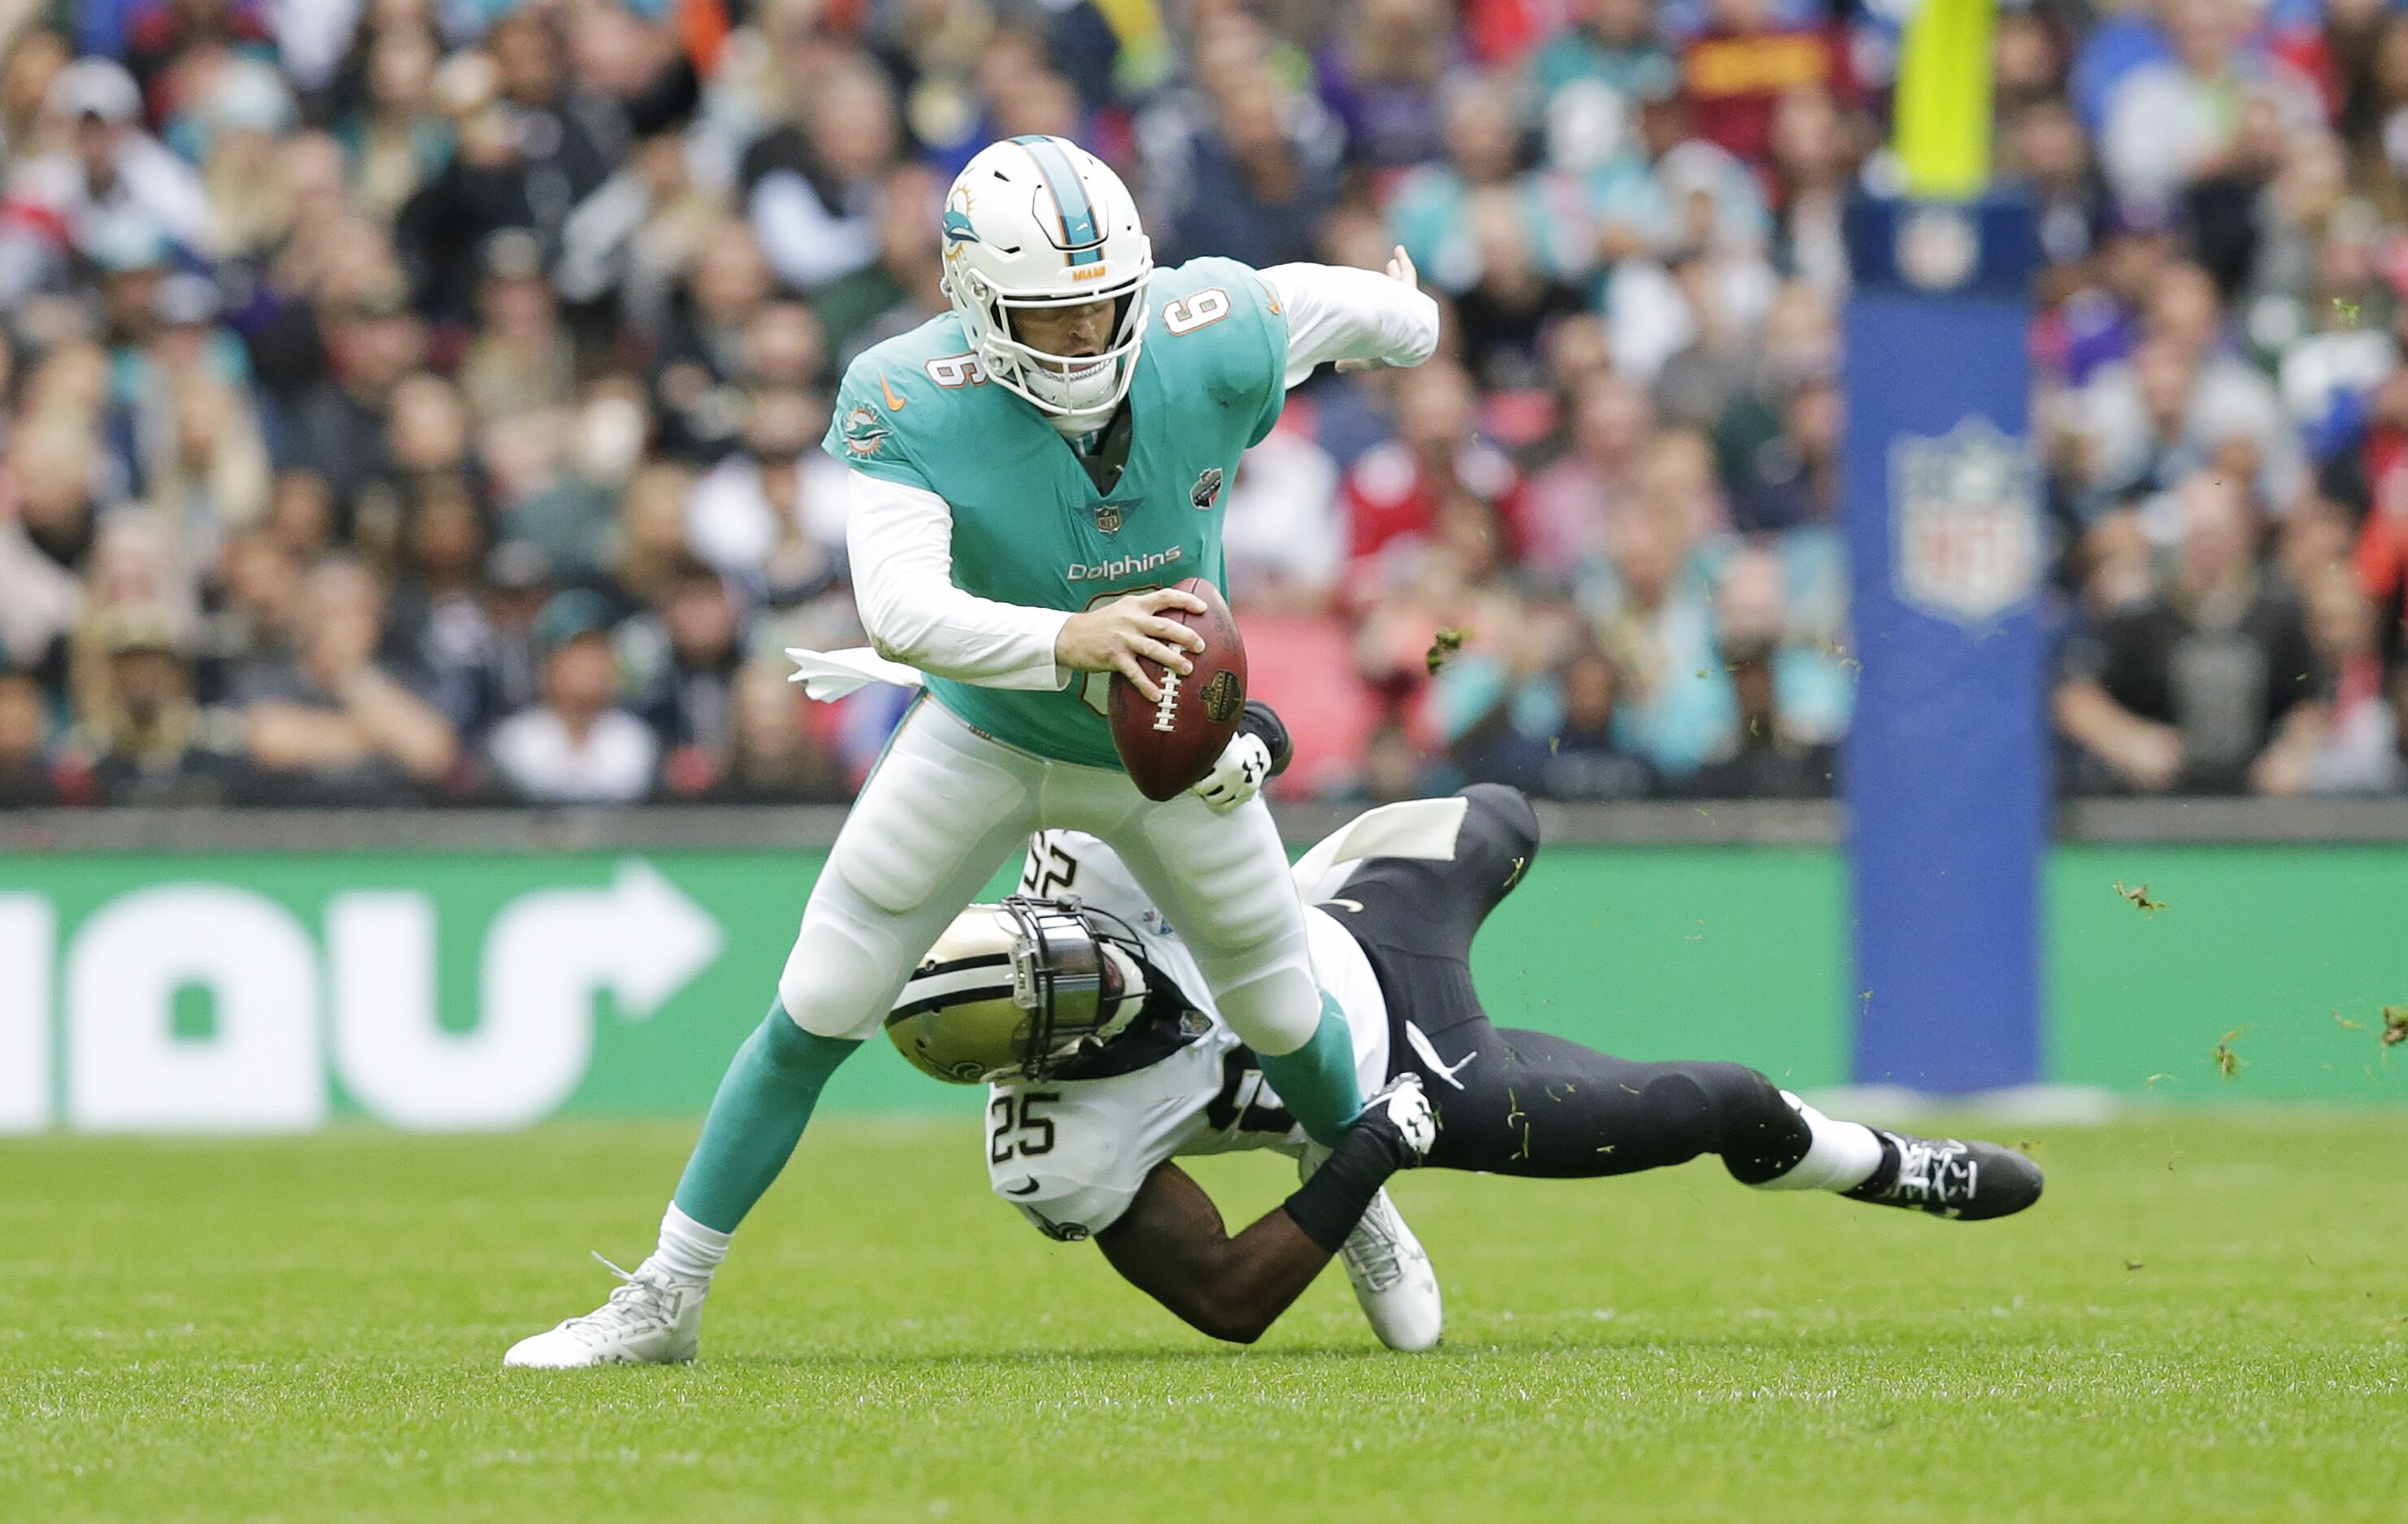 Get the latest Miami Dolphins news scores stats standings rumors and more from ESPN